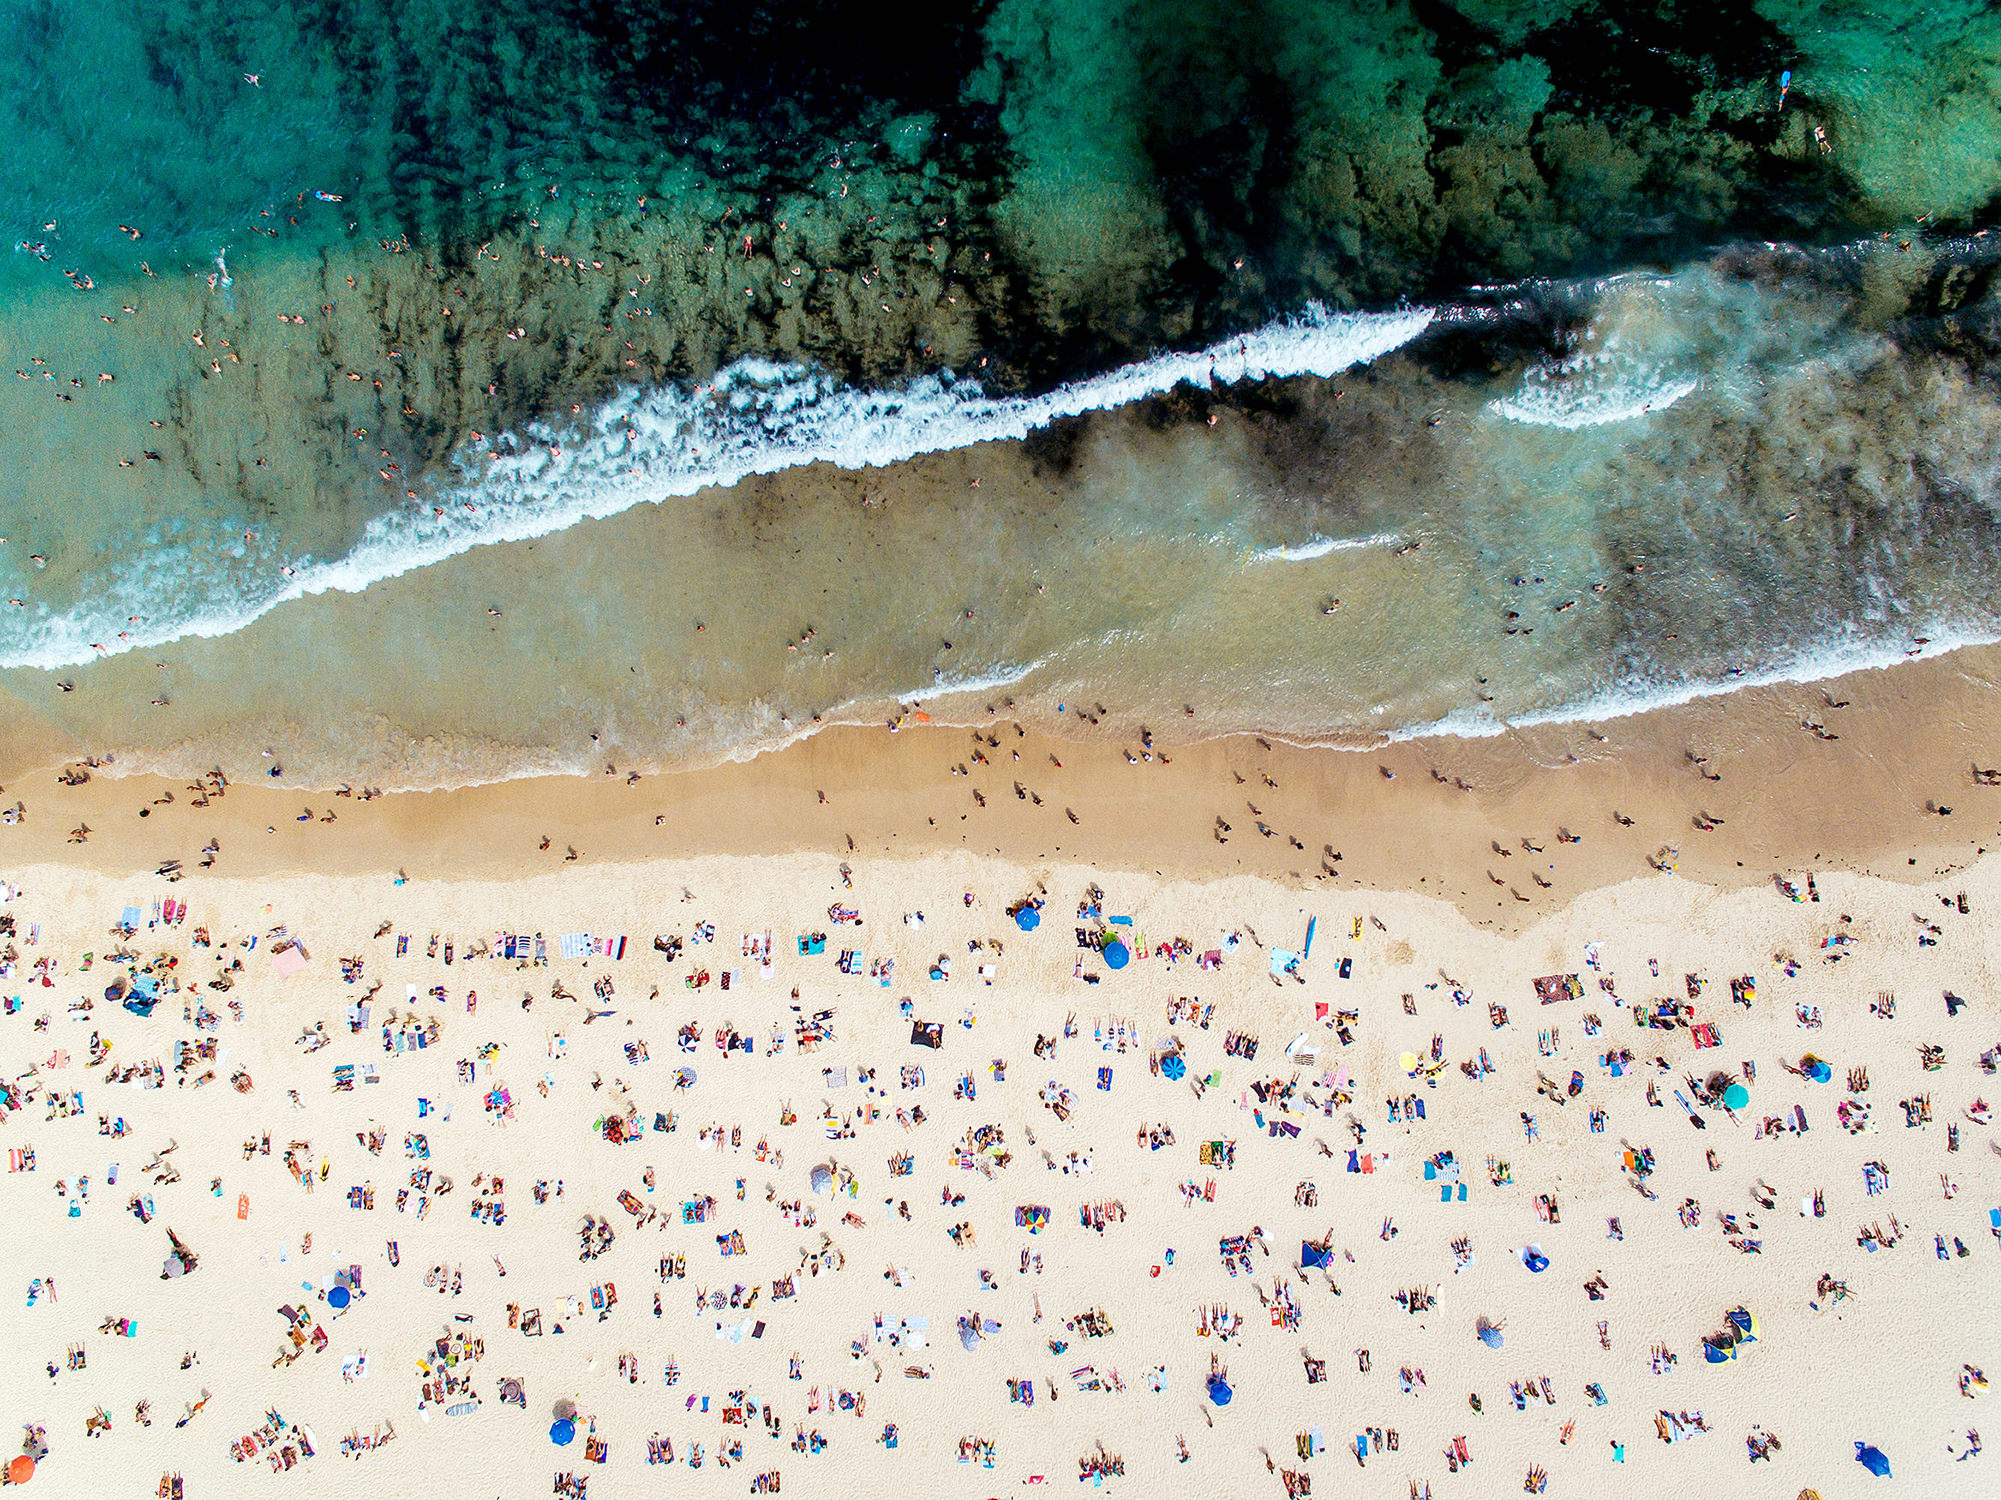 10 Bondi Beach Drone Photo Photographer